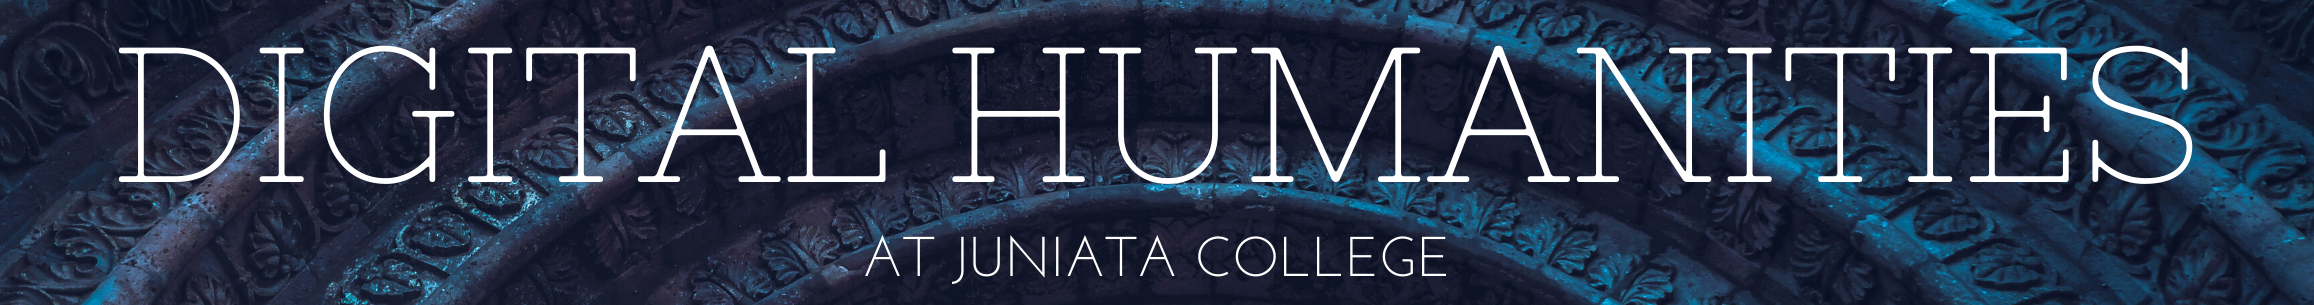 Digital Humanities at Juniata College